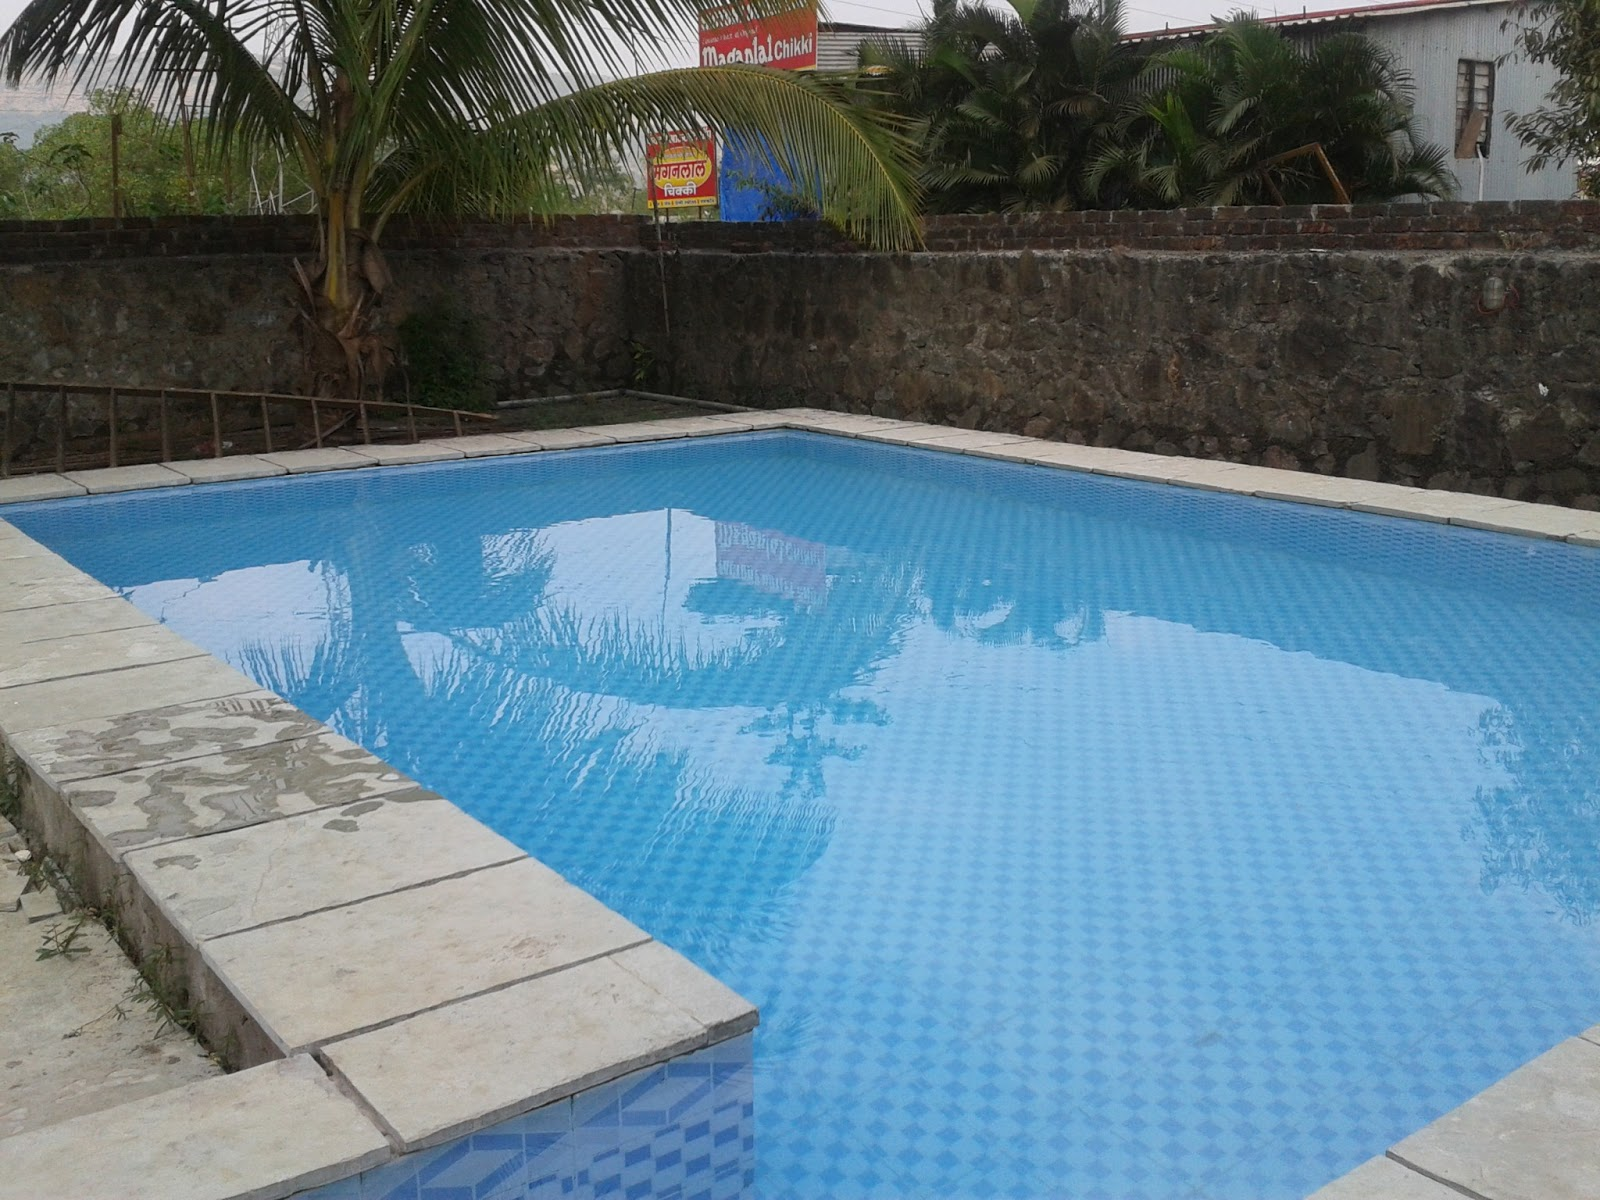 Best Bungalow For On Hire For Rent In Lonavala 9930720306 Party In Lonavala 91 9920482316